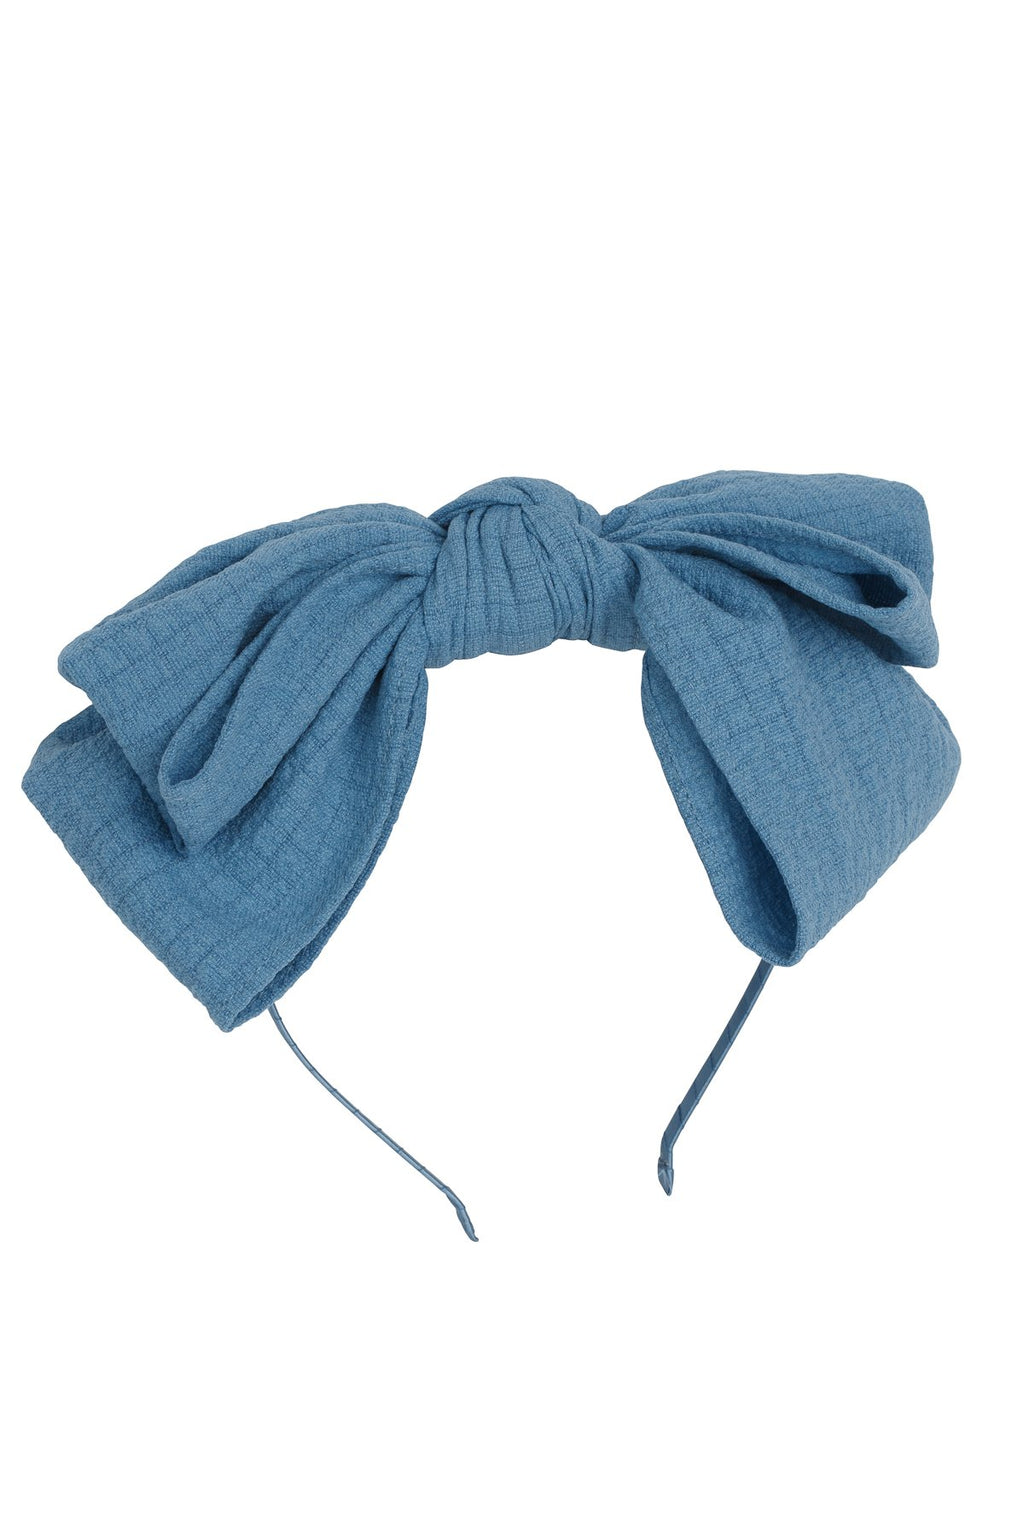 Floppy Muslin Headband - Smoke Blue - PROJECT 6, modest fashion